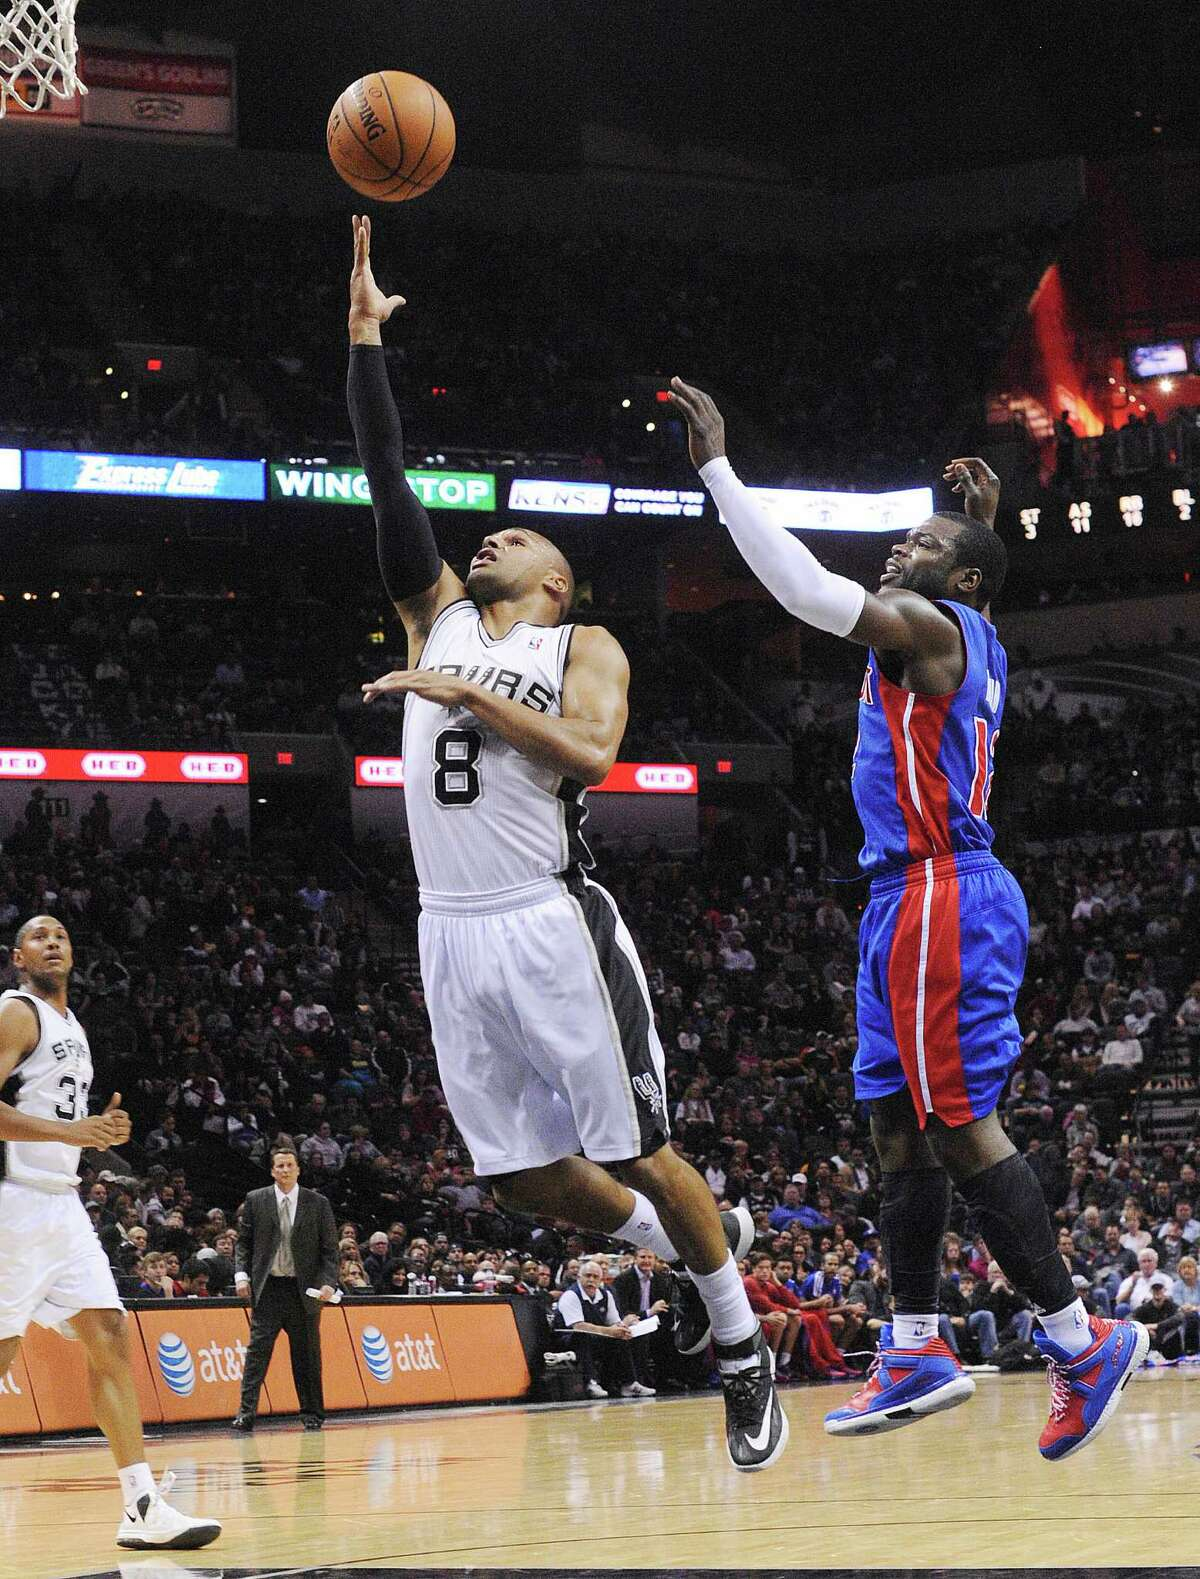 Patty Mills (8) of the San Antonio Spurs lays up the ball as Will Bynum of the Detroit Pistons defends during NBA action in the AT&T Center on Wednesday, Feb. 26, 2014.